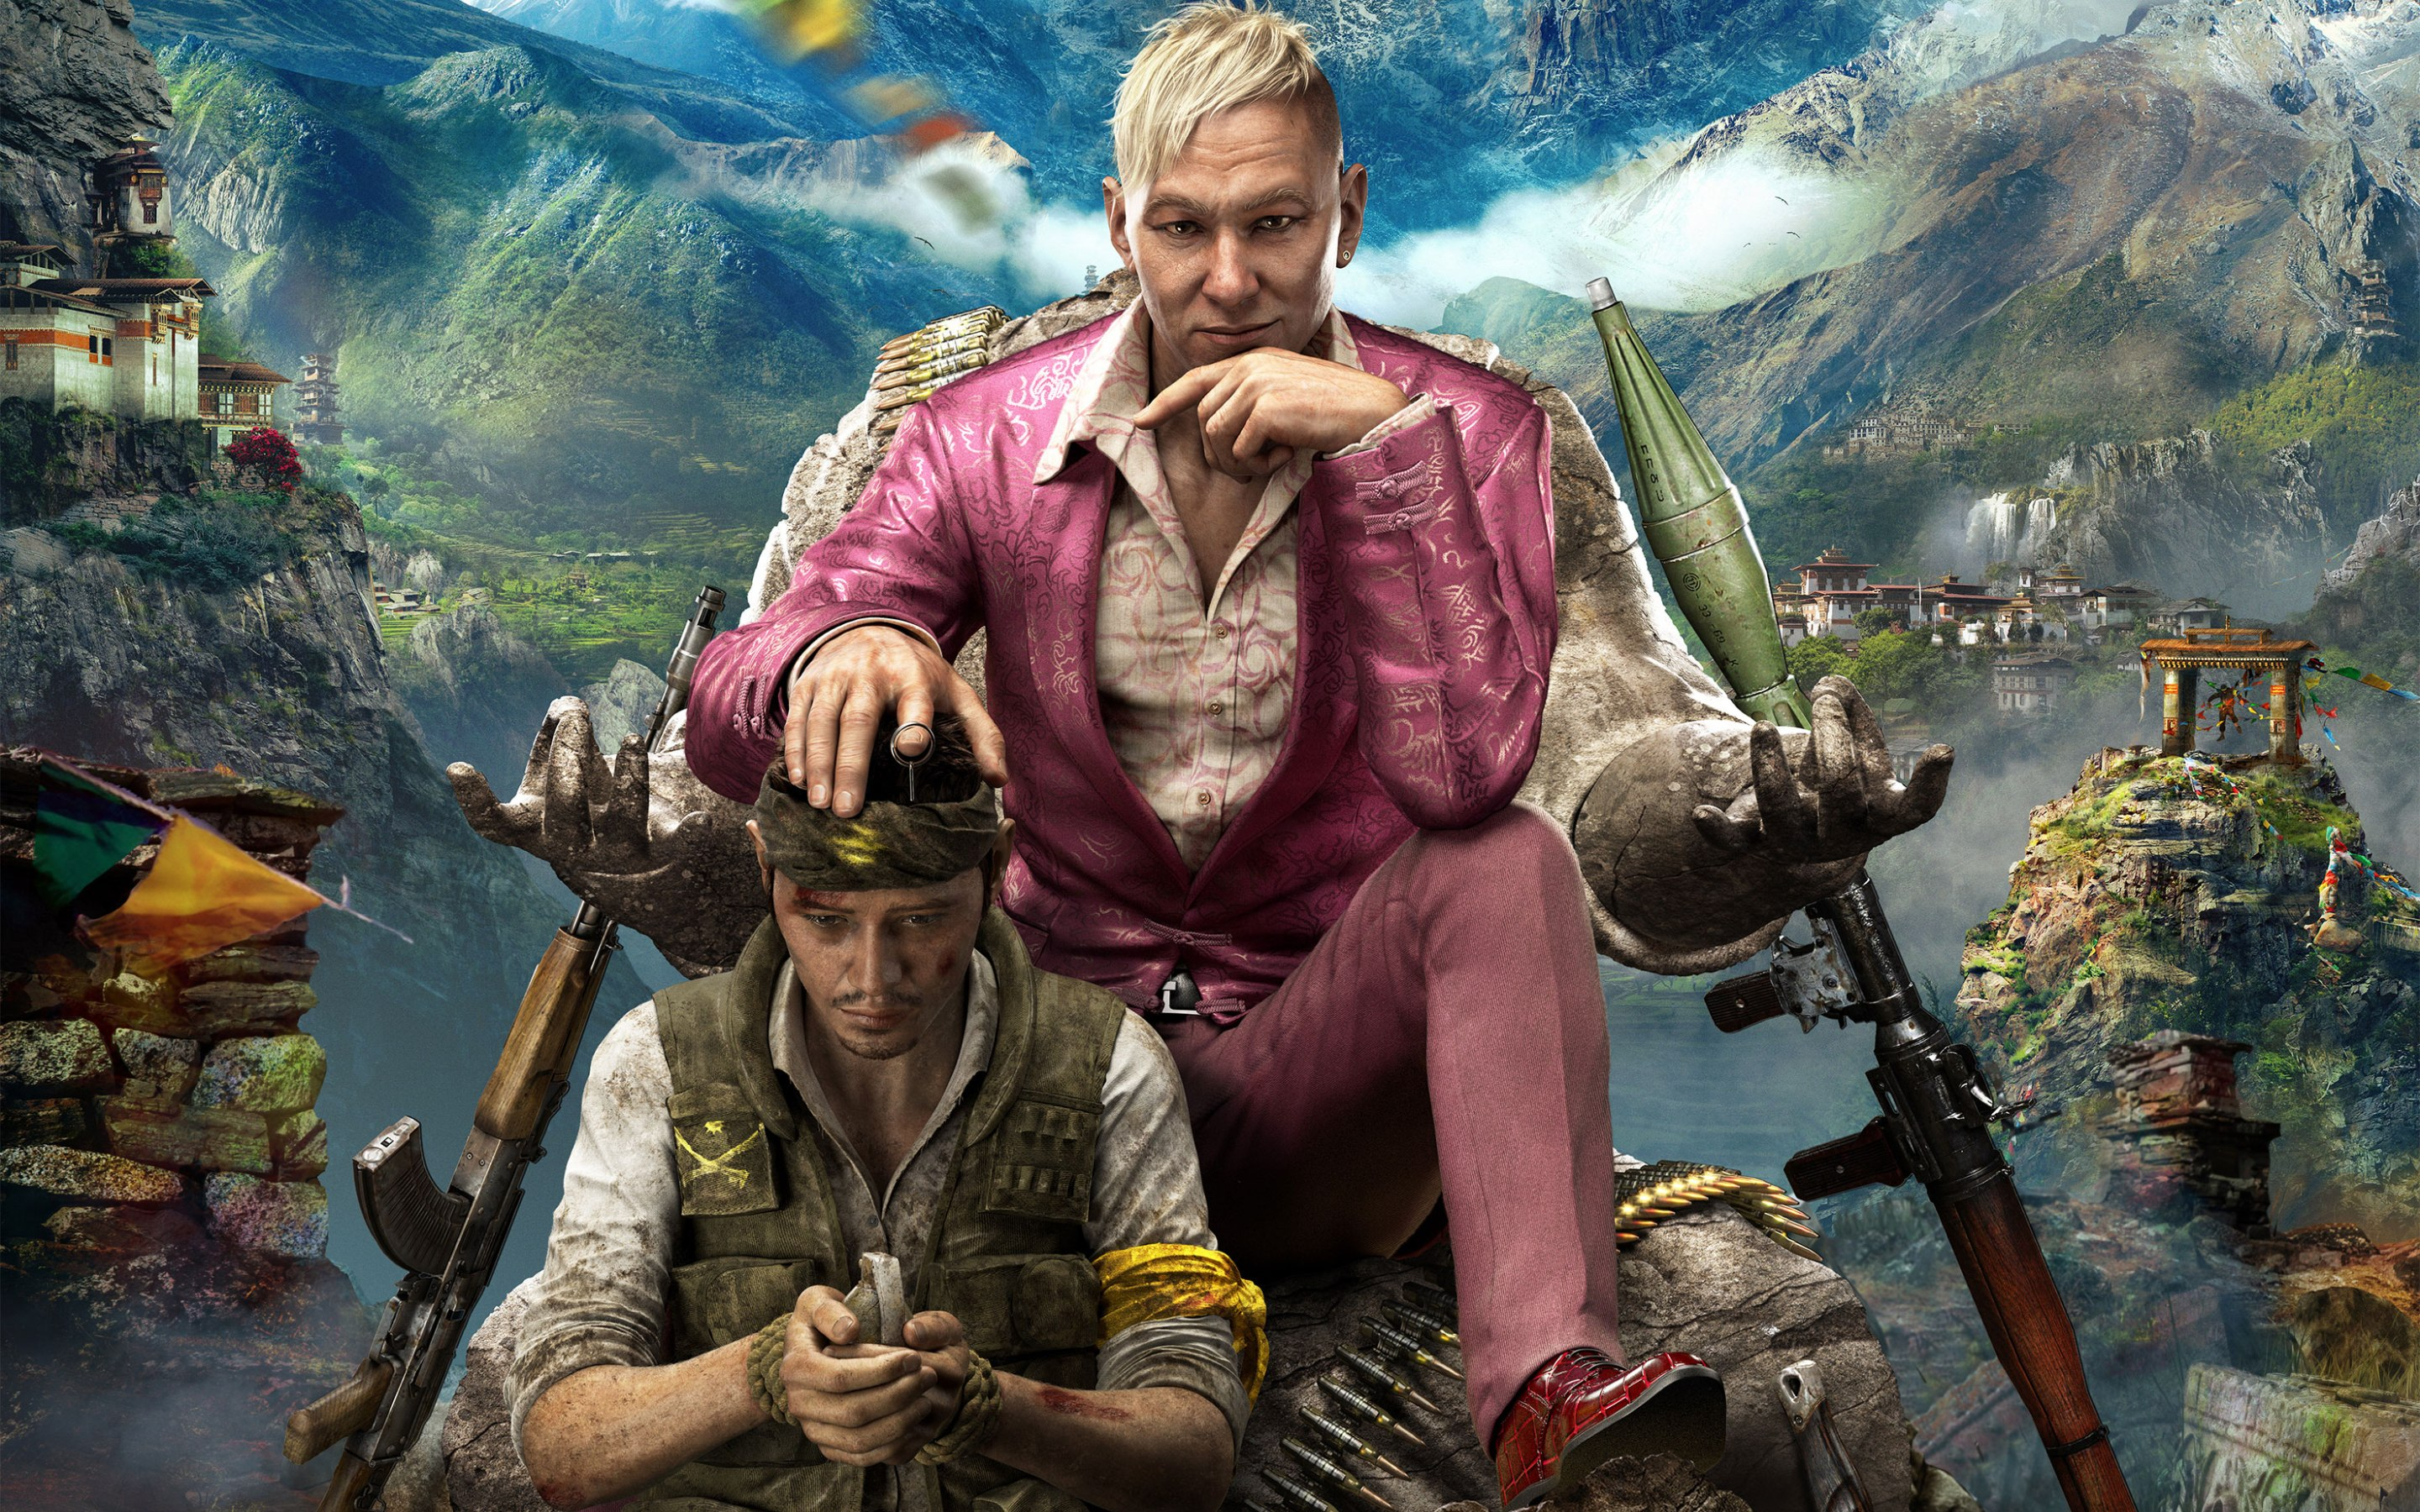 far cry 4 wallpaper 1080p